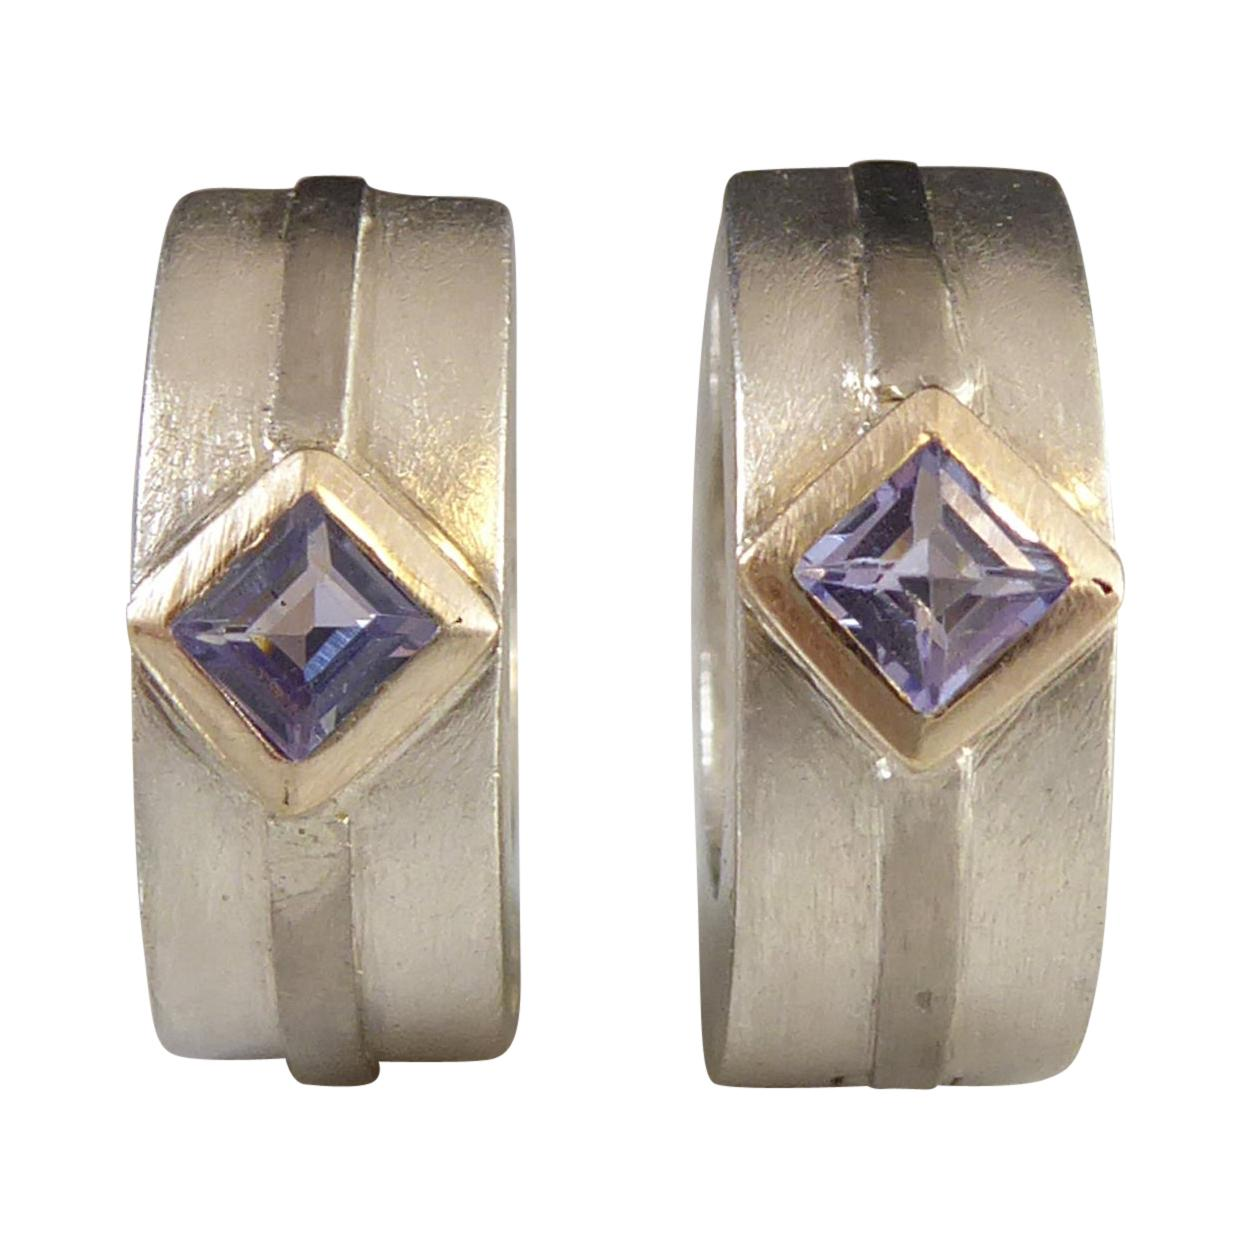 Contemporary Silver and Amethyst Hoop Earrings for Pierced Ears